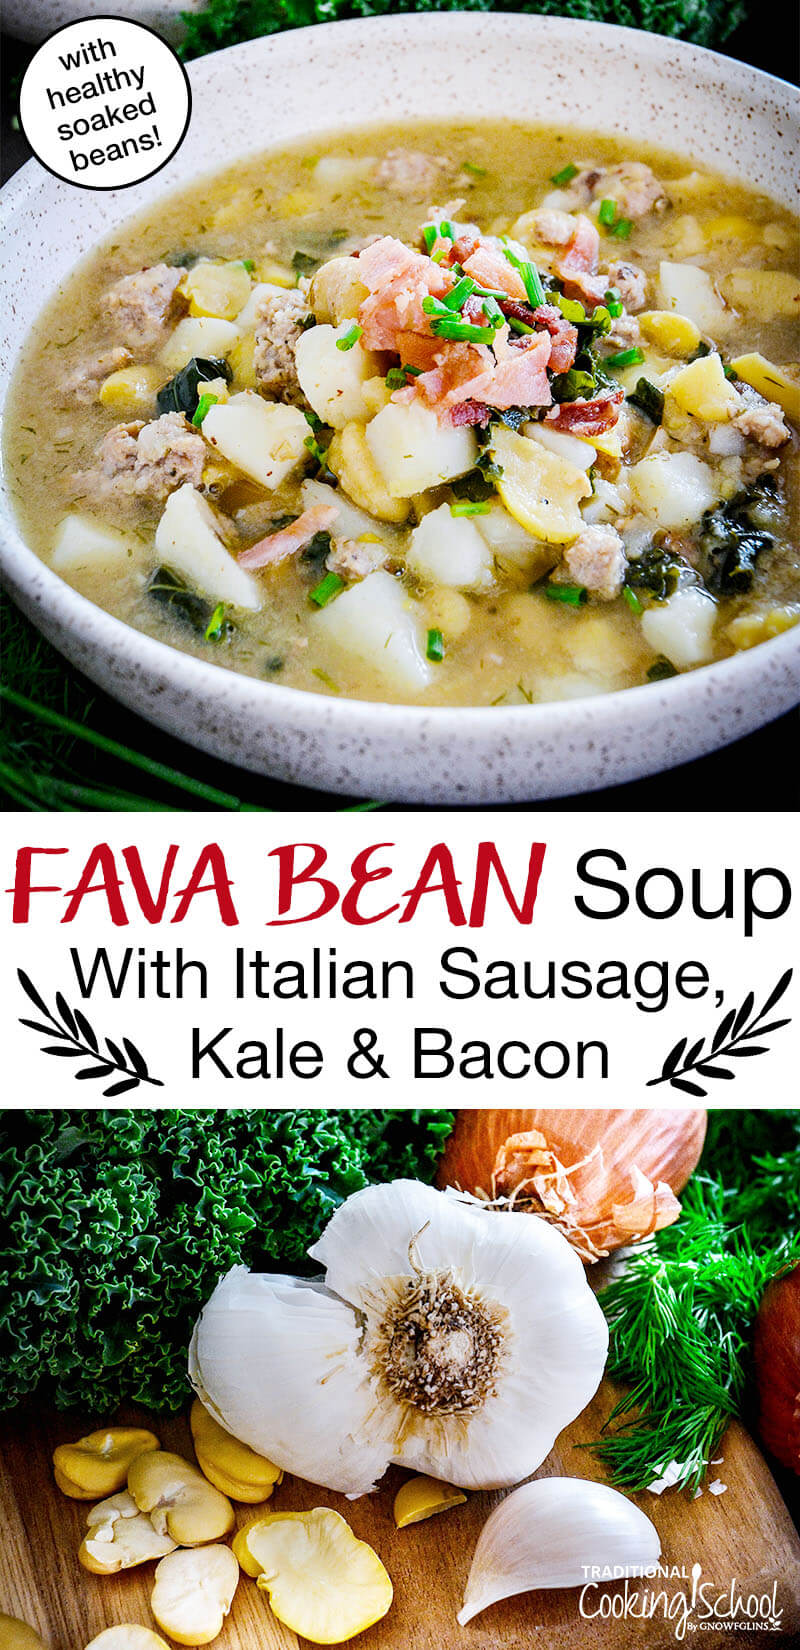 "photo collage of making healthy soup, packed with veggies and garnished with bacon and chives, with text overlay: ""Fava Bean Soup With Italian Sausage, Kale & Bacon (with healthy soaked beans!)"""